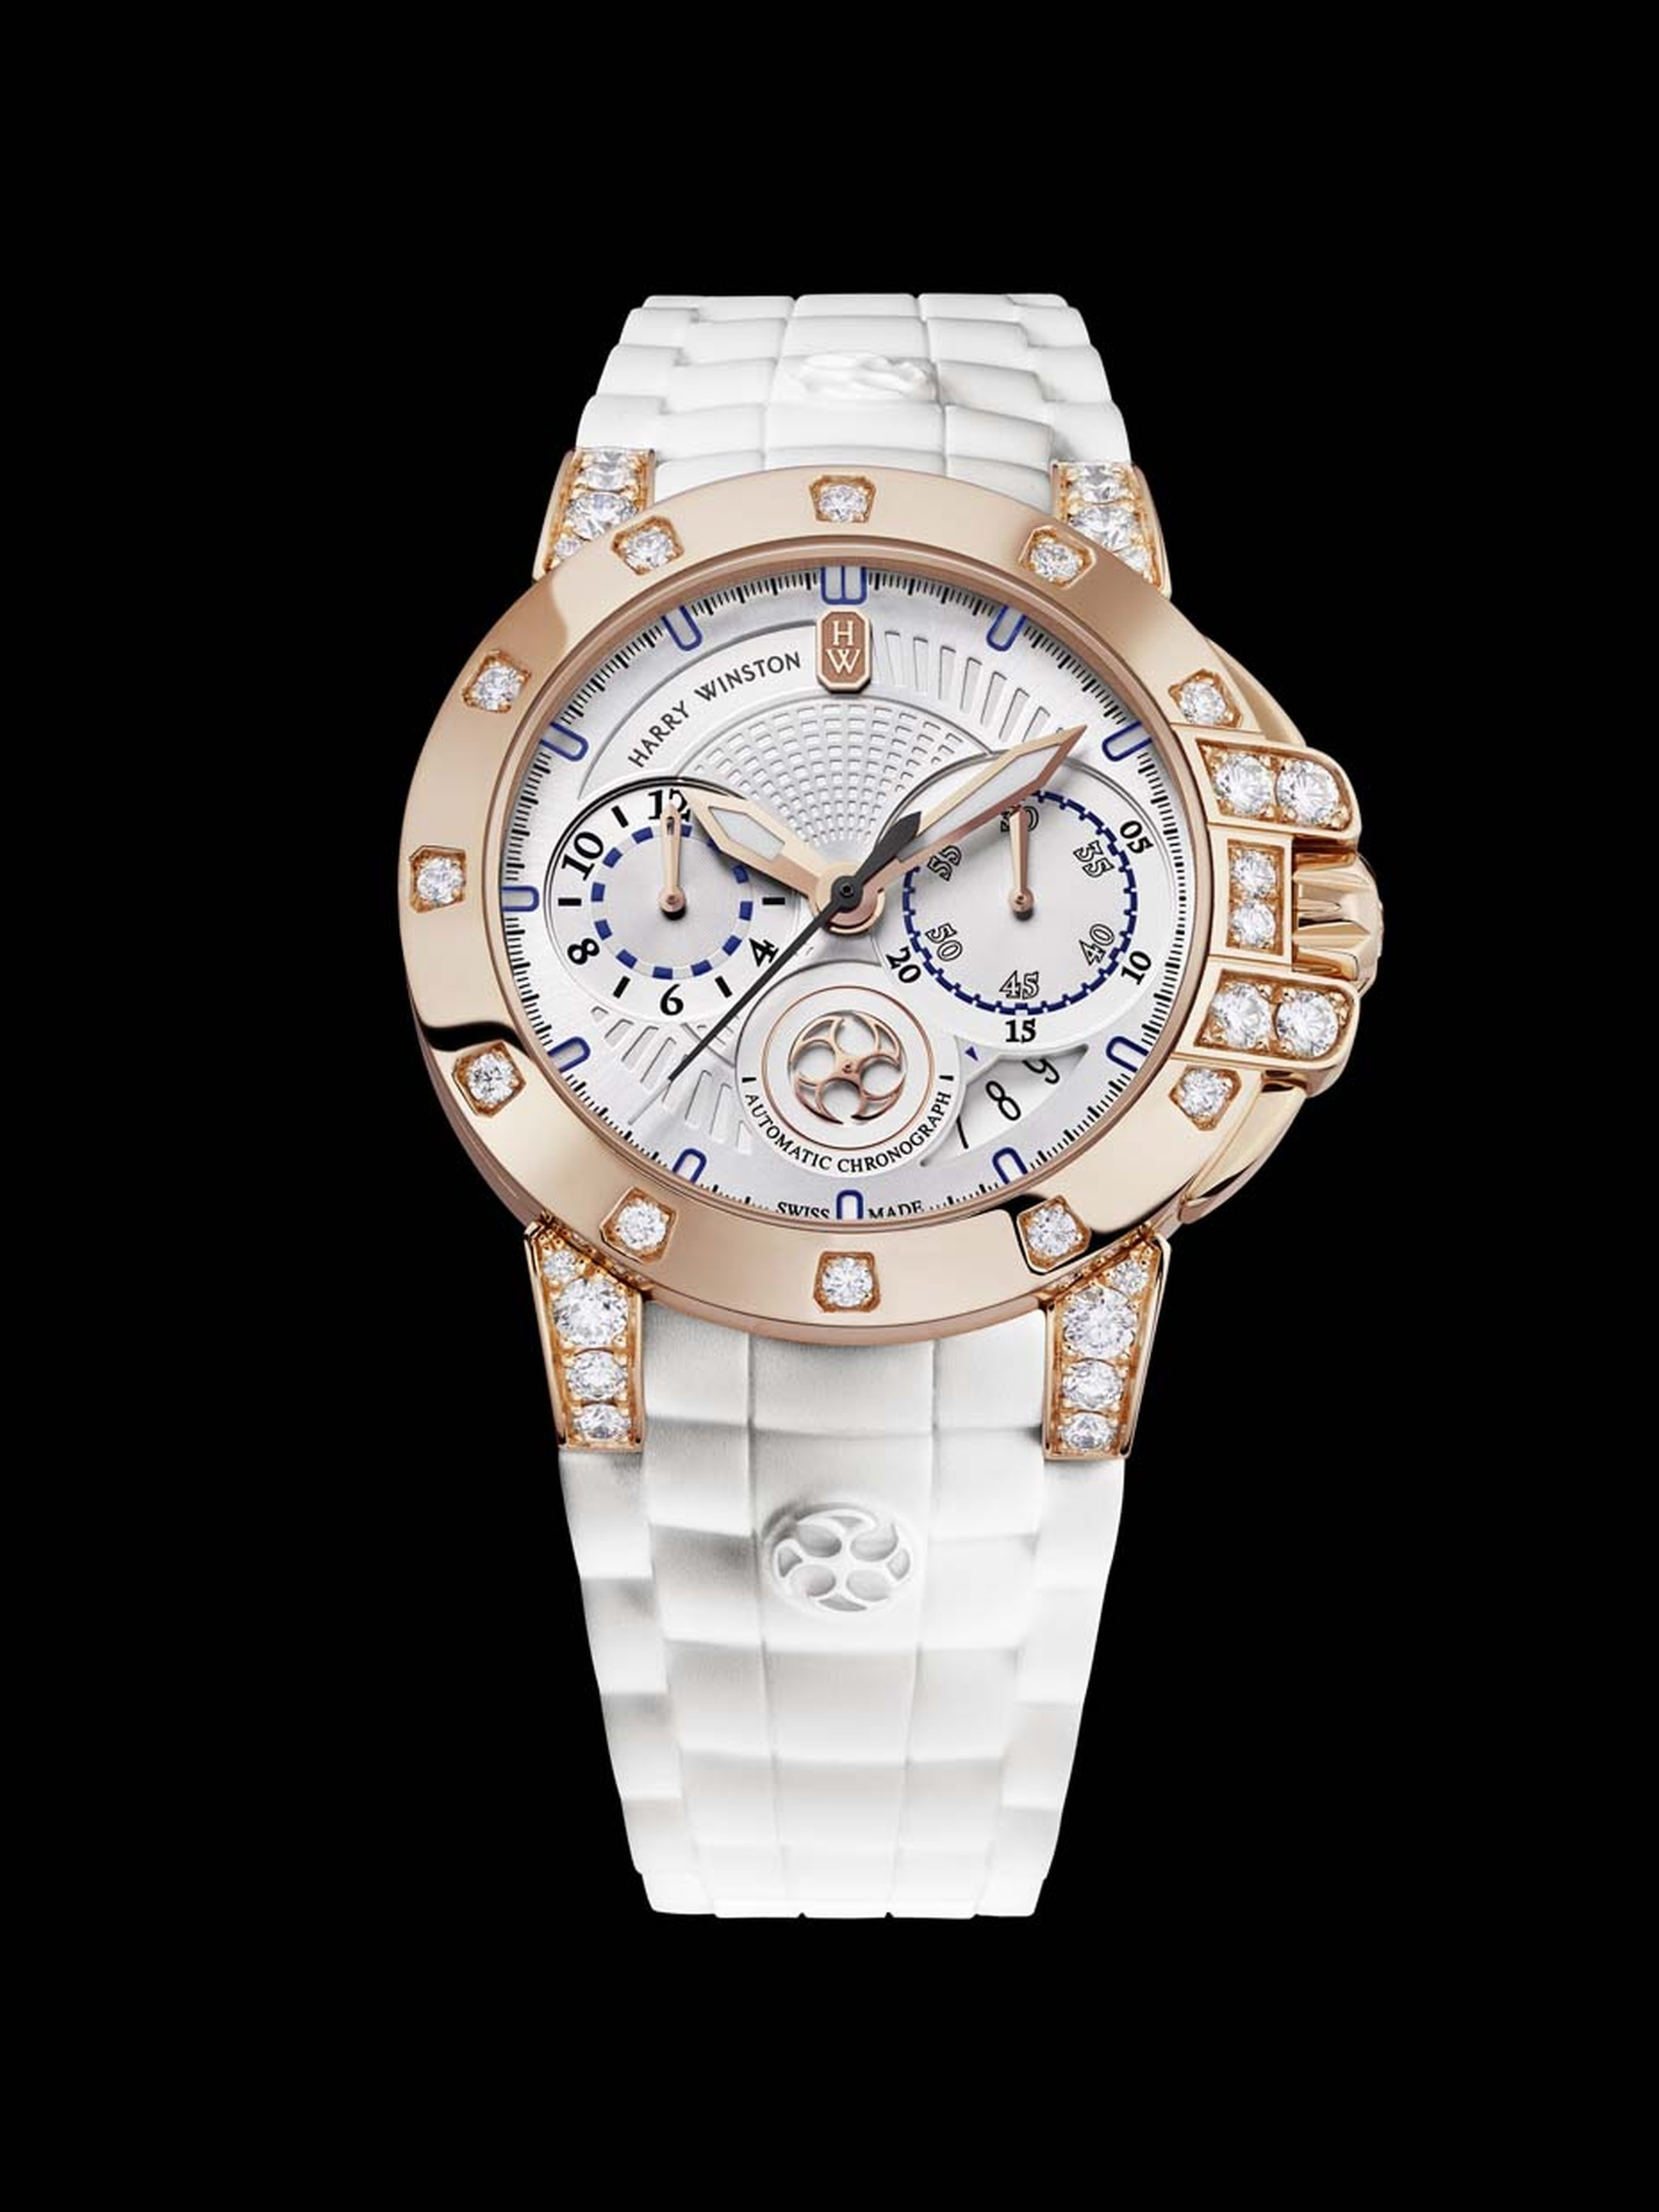 Harry Winston watches Ocean Chronograph Automatic 36mm for ladies is equipped with a high-tech chronograph movement visible through the caseback. The rose gold case is set with 33 brilliant-cut diamonds on the bezel and lugs.